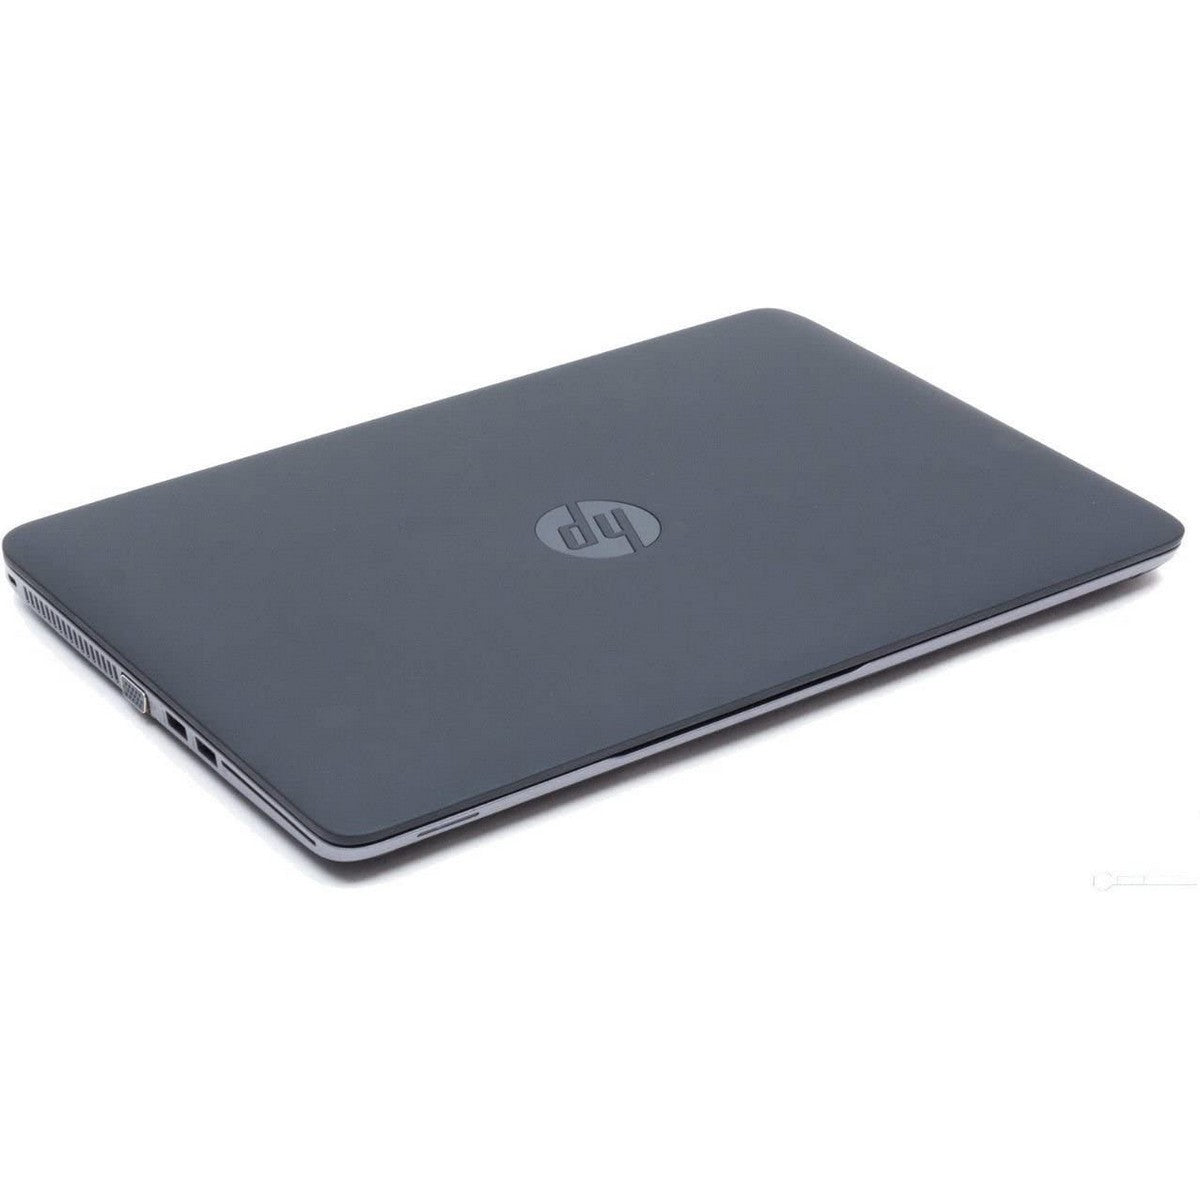 Used HP 840G2 Laptop 14'' FHD, Intel Core i5 i5-5300U, 8GB RAM, Intel 5500 GPU, 500GB HDD, Touchscreen, English Keyboard